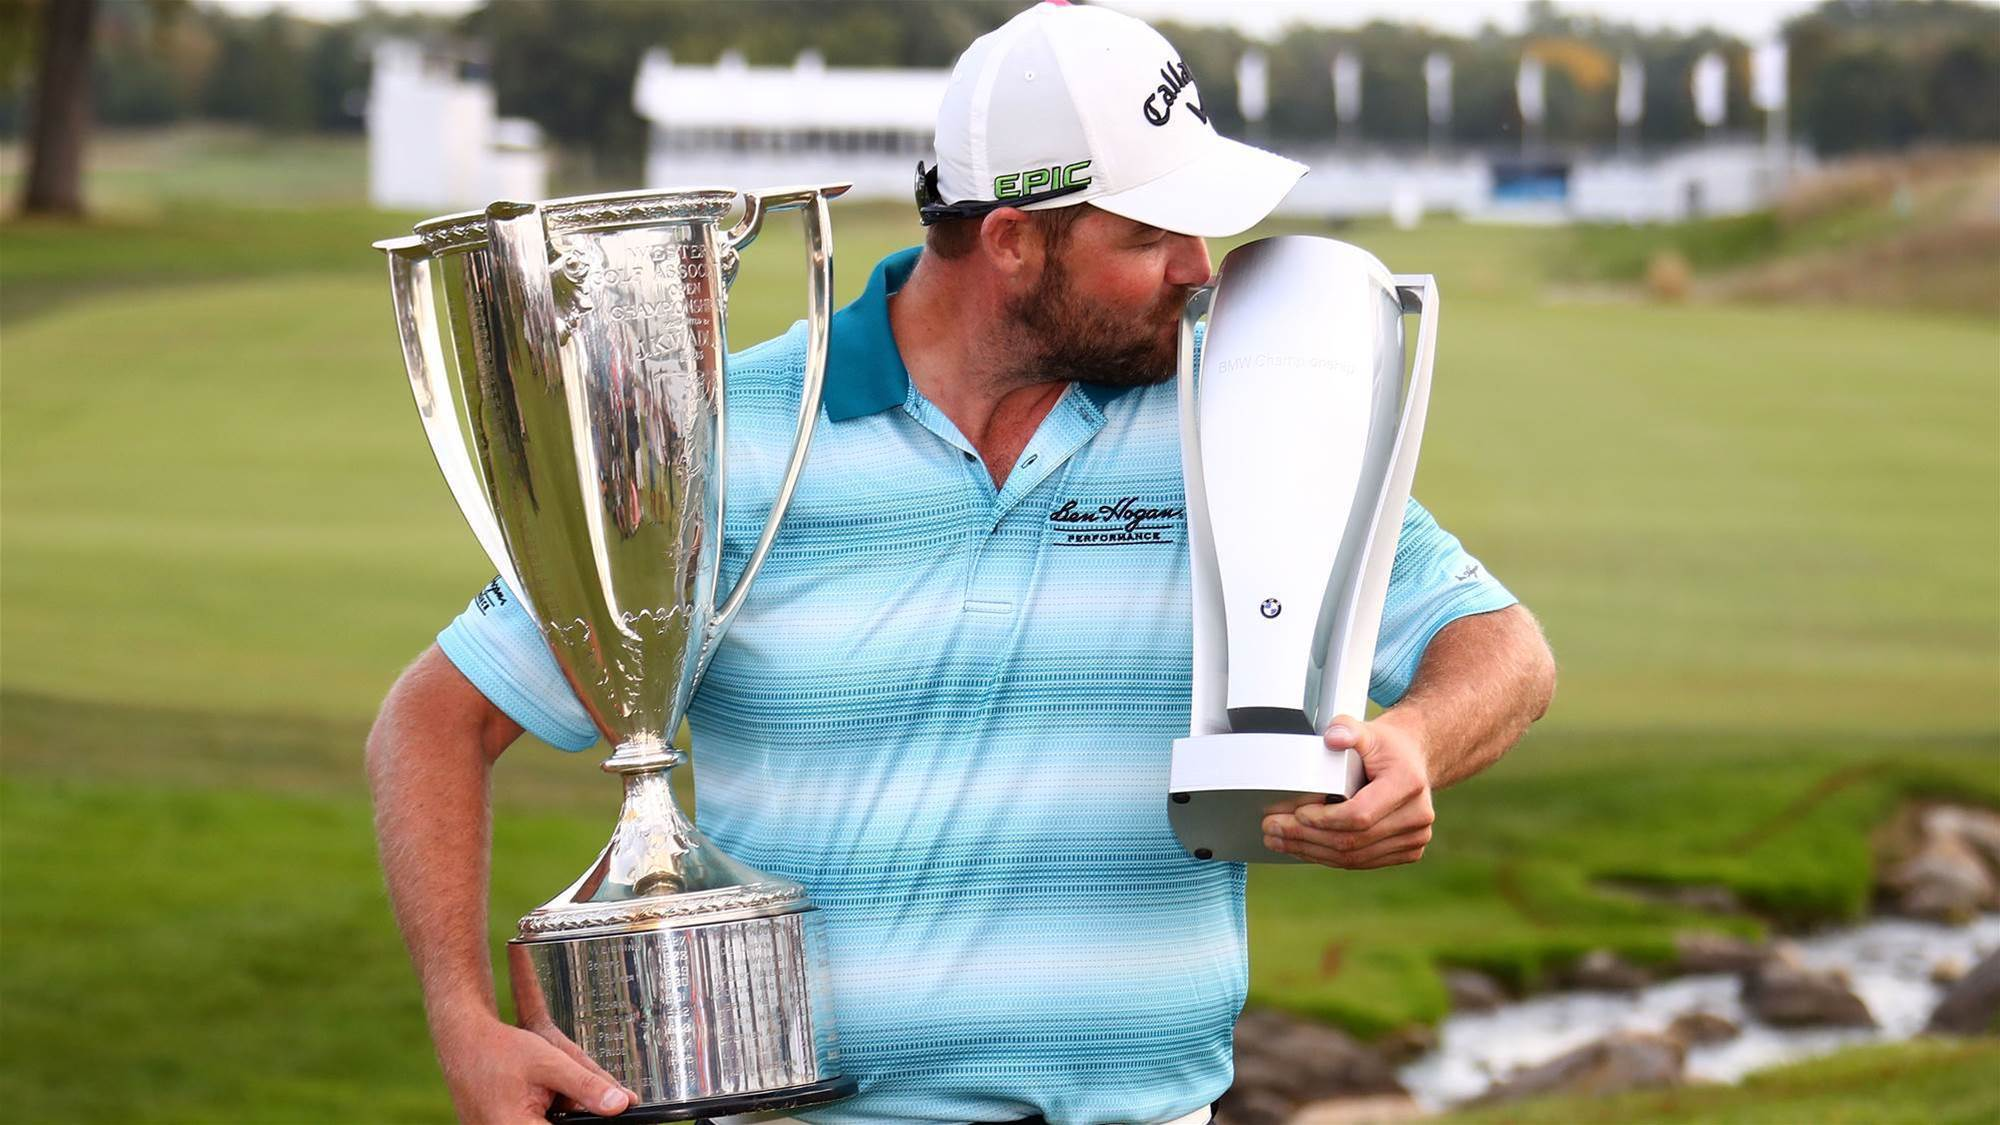 PGA TOUR: Leishman romp puts him in $10 million frame